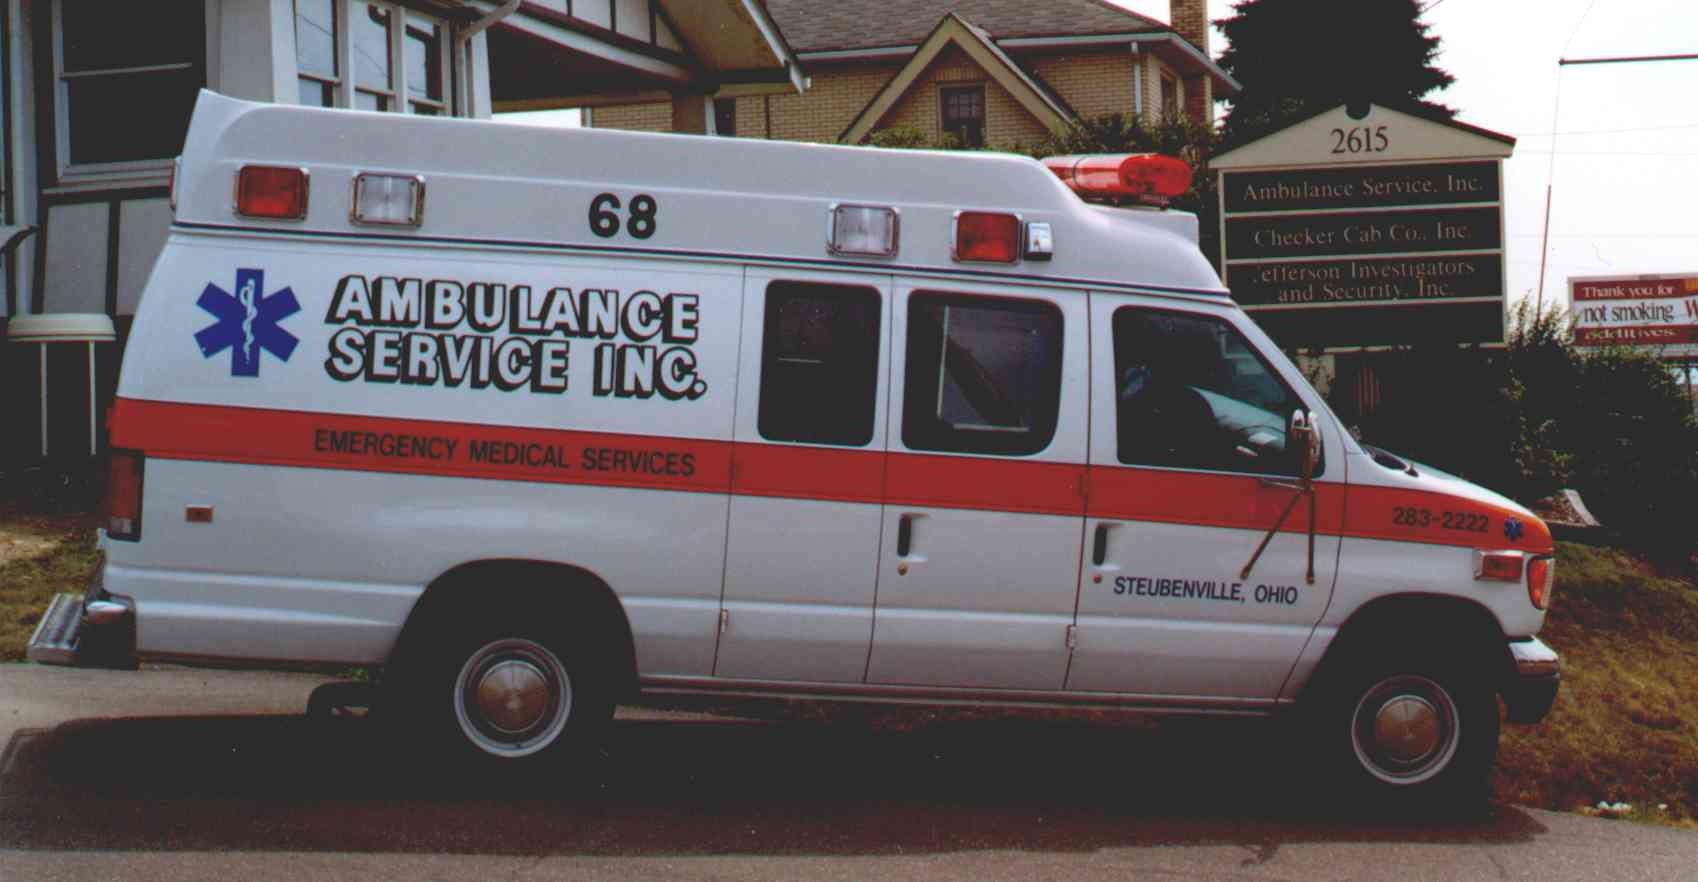 Ambulance Service, Inc